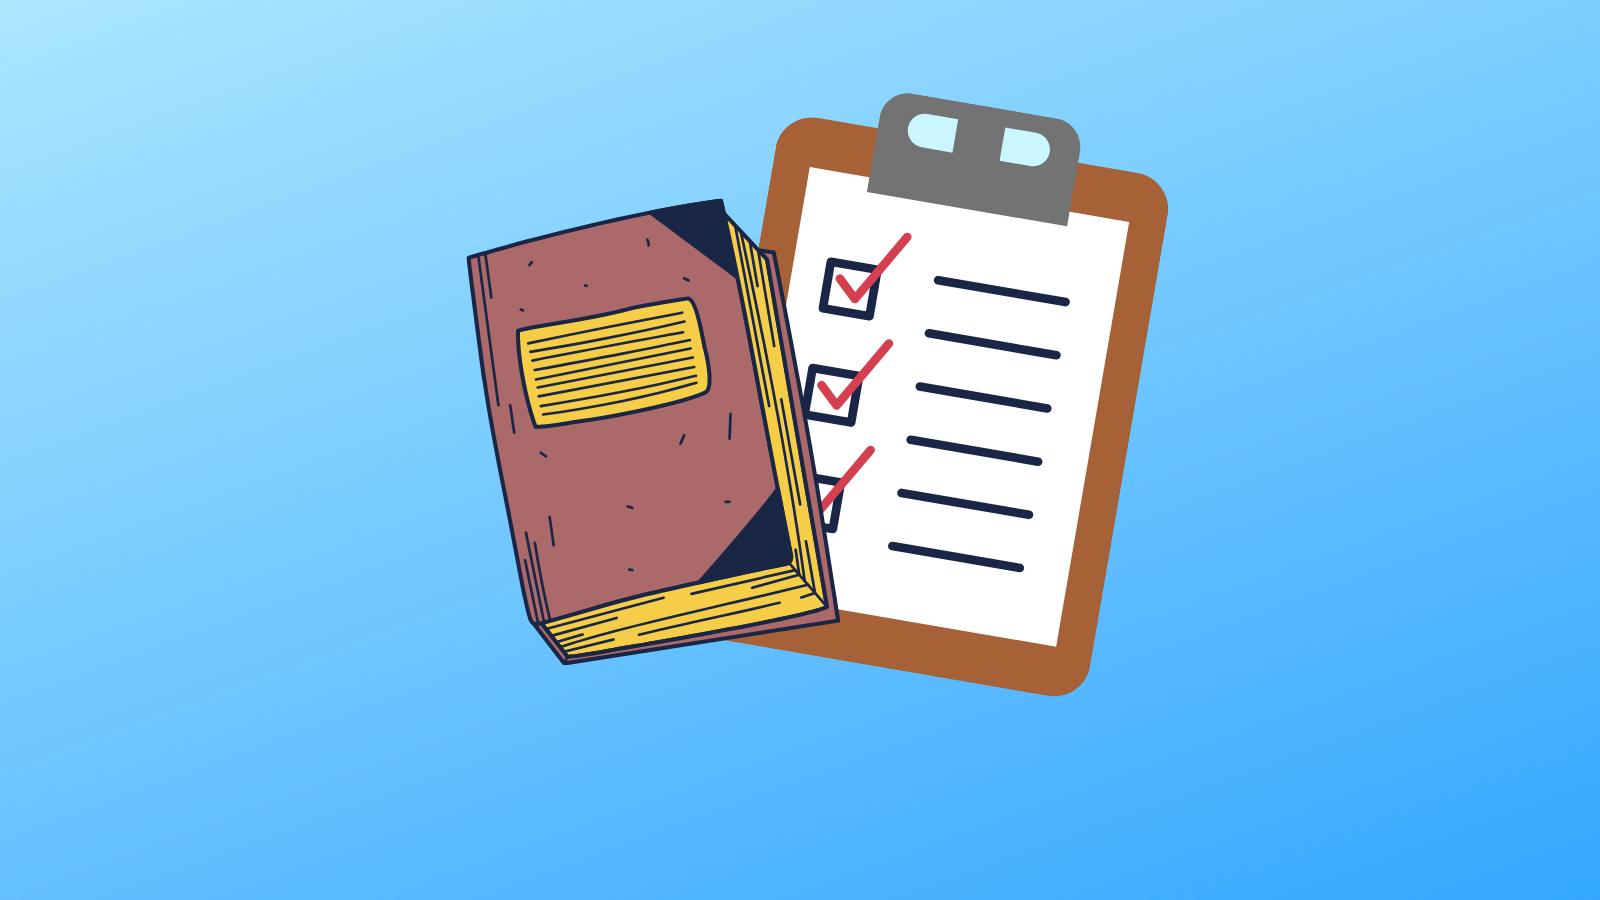 A Notebook with a Checklist. 10 Prompts to Start Writing